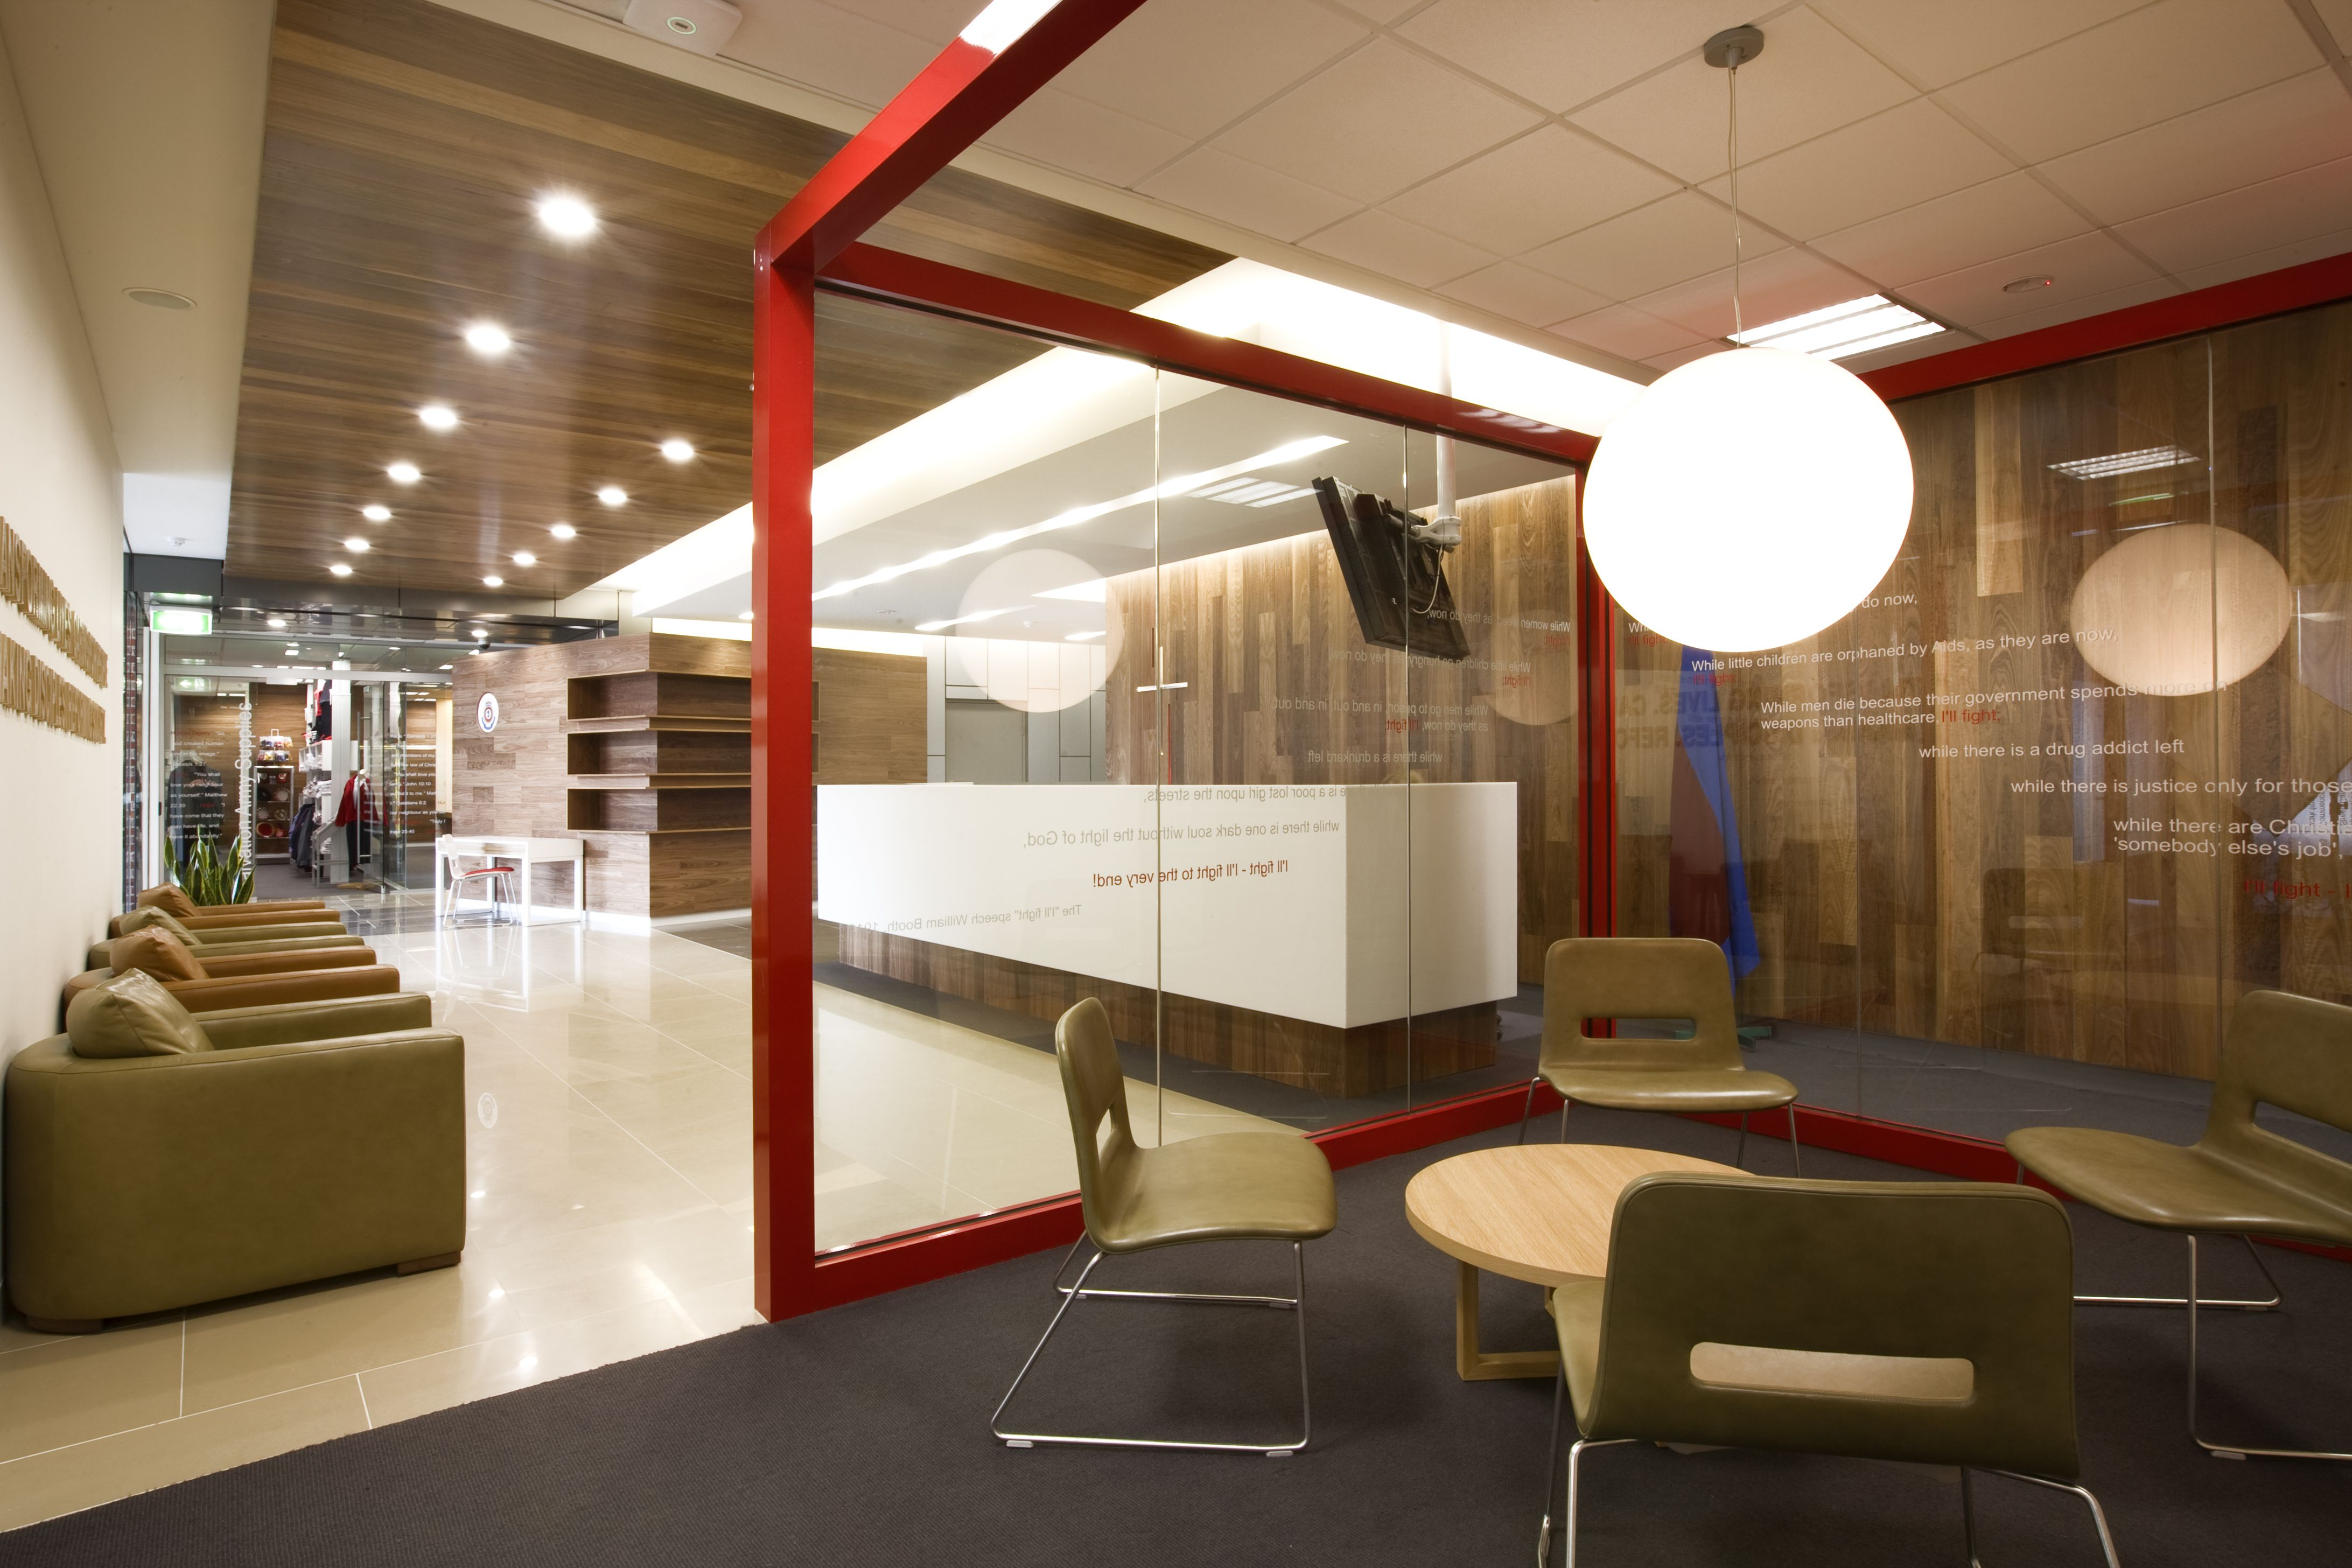 Reception, Waiting area and Meeting room by Artillery Interior  Architecture, Melbourne.